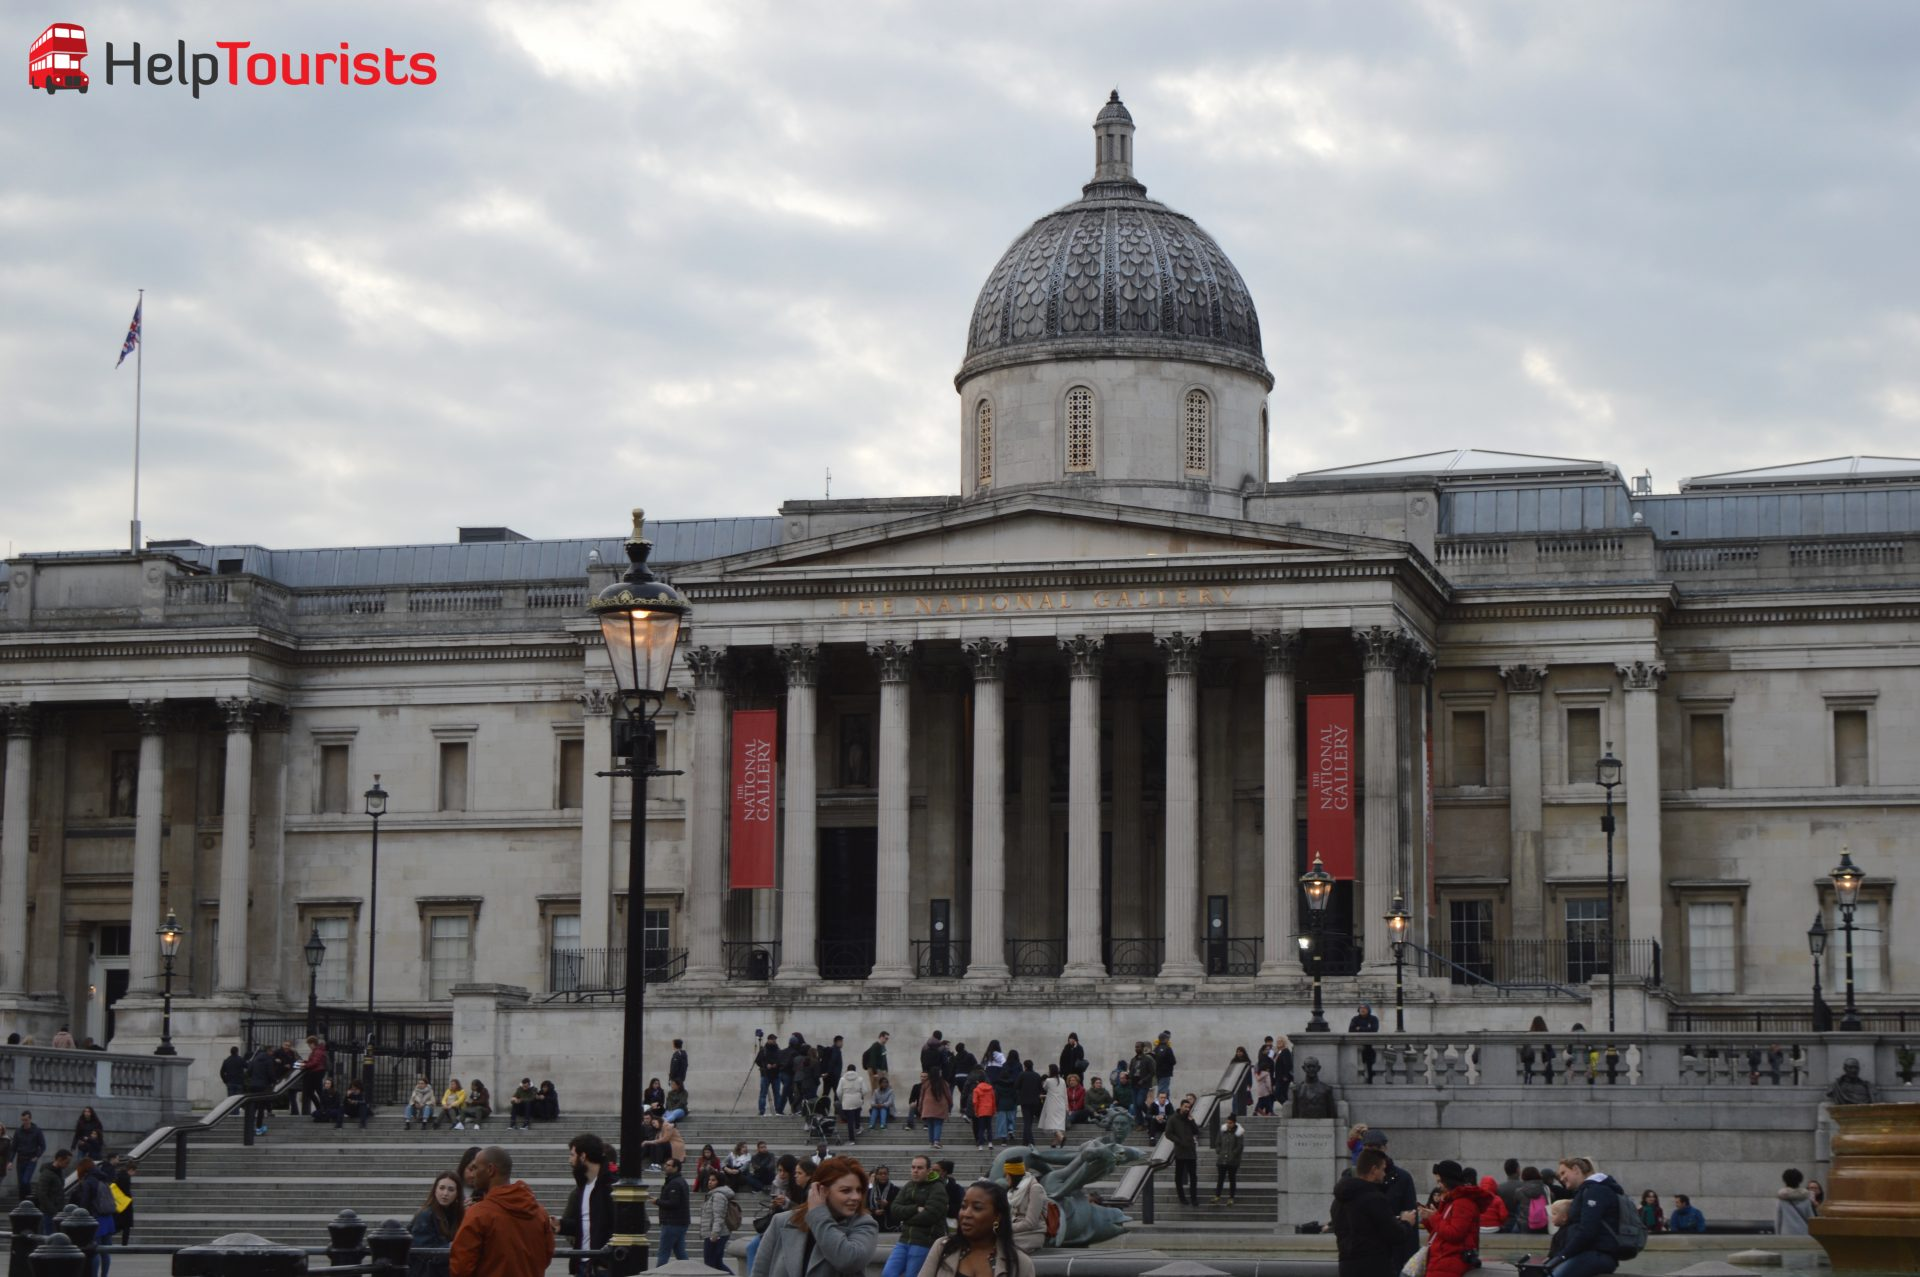 National Gallery London